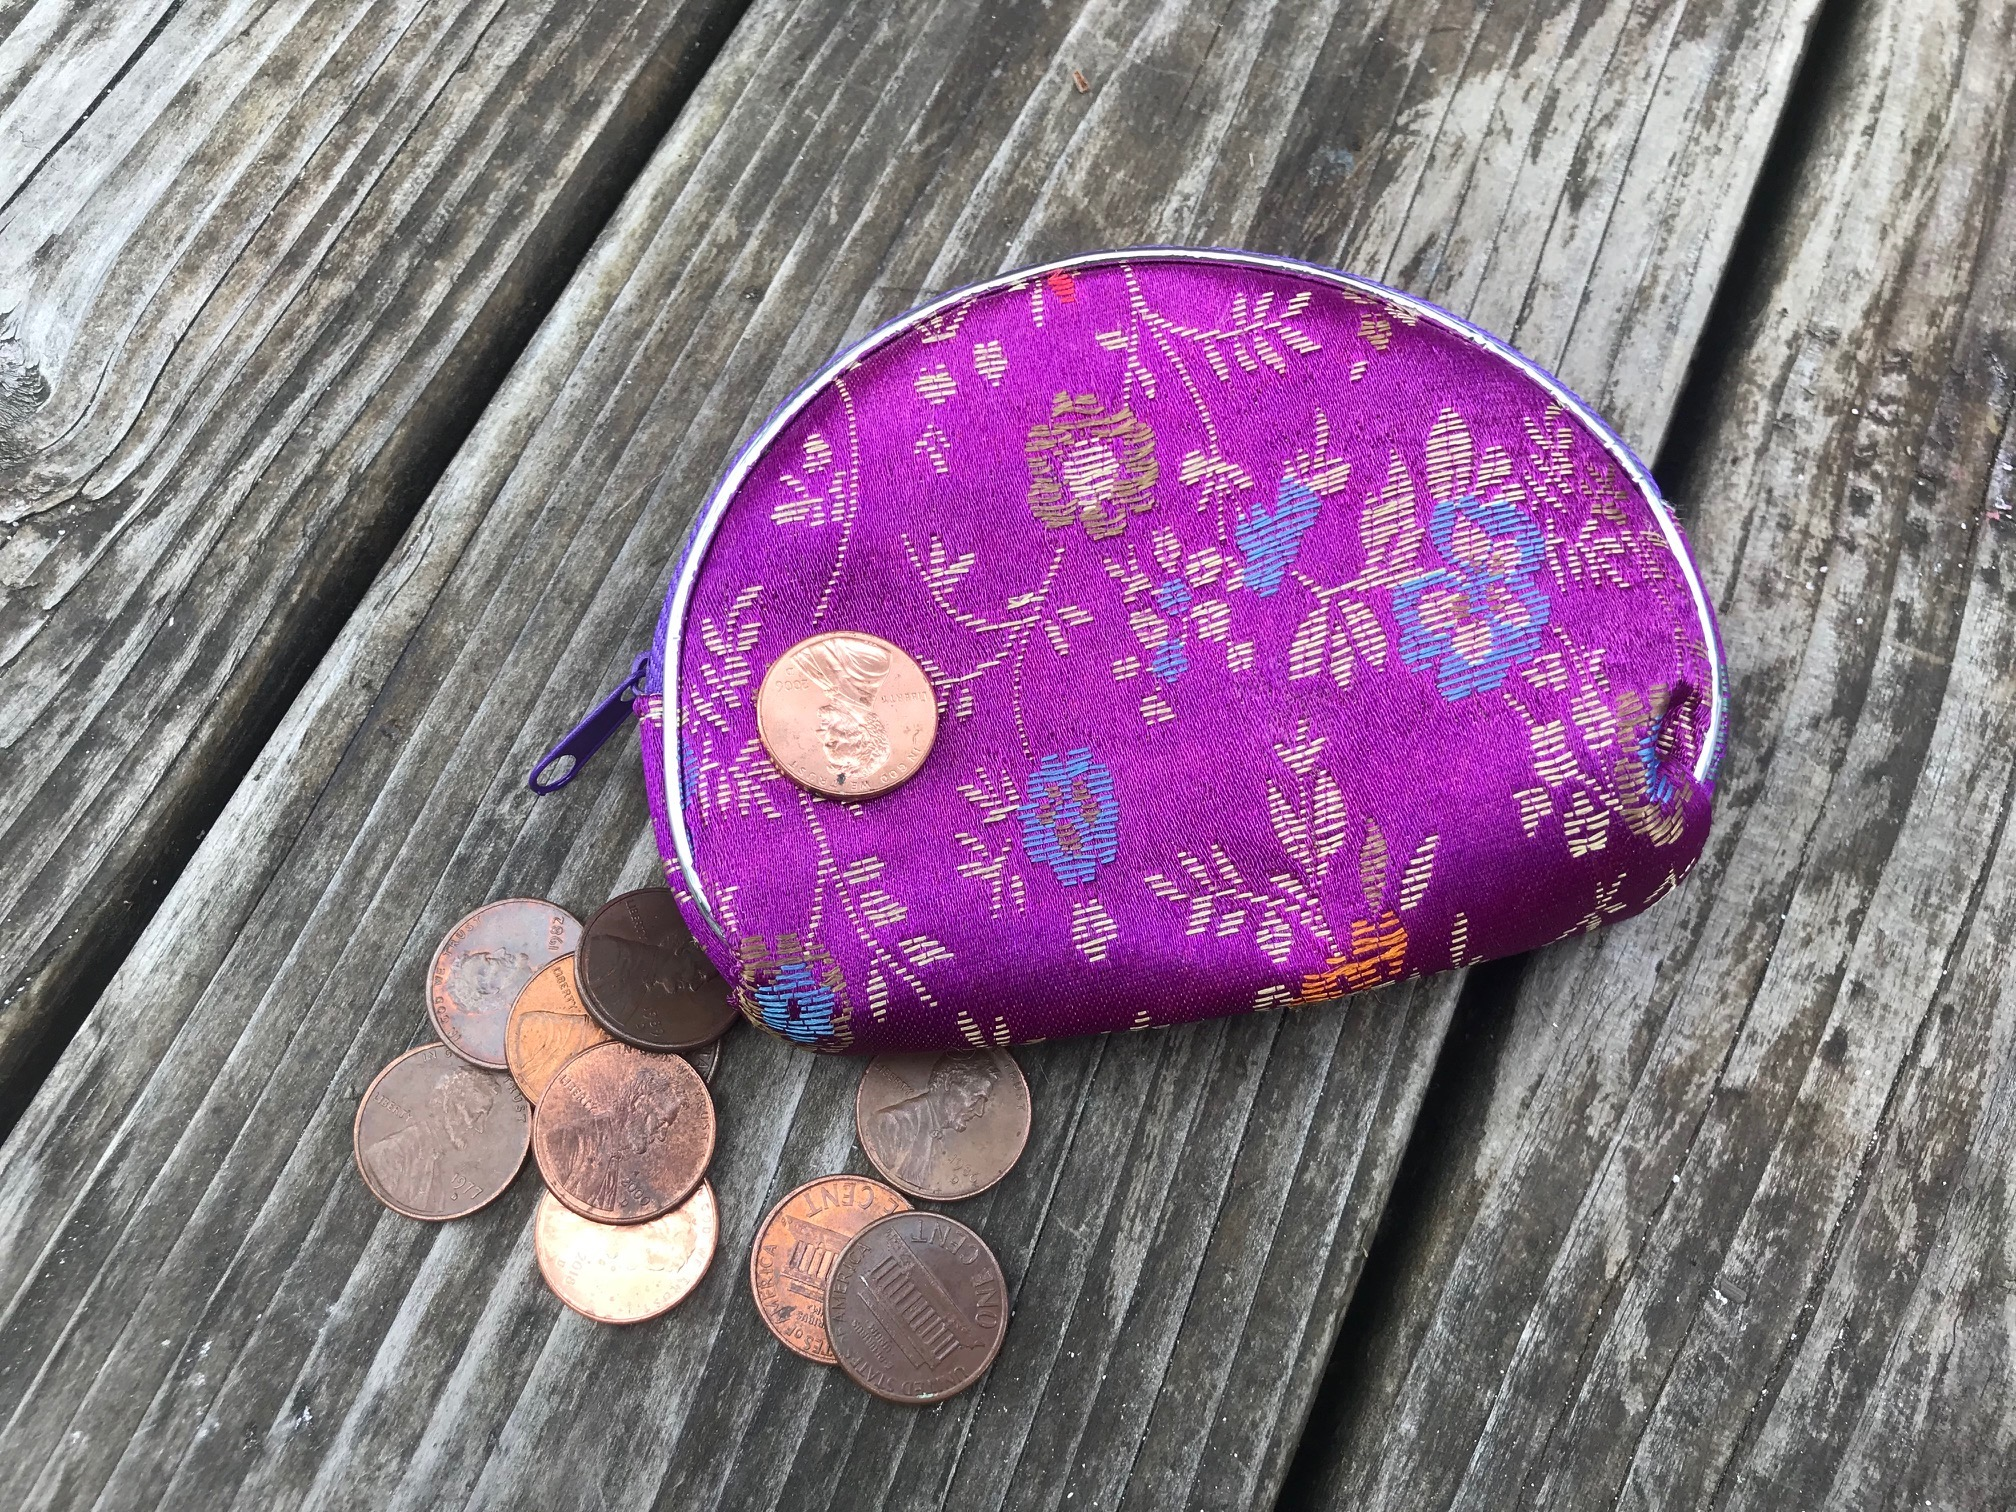 Purple Satin Chinese Nesting Zippered Purse Purchased in San Francisco's China Town - 2018: Lead Free